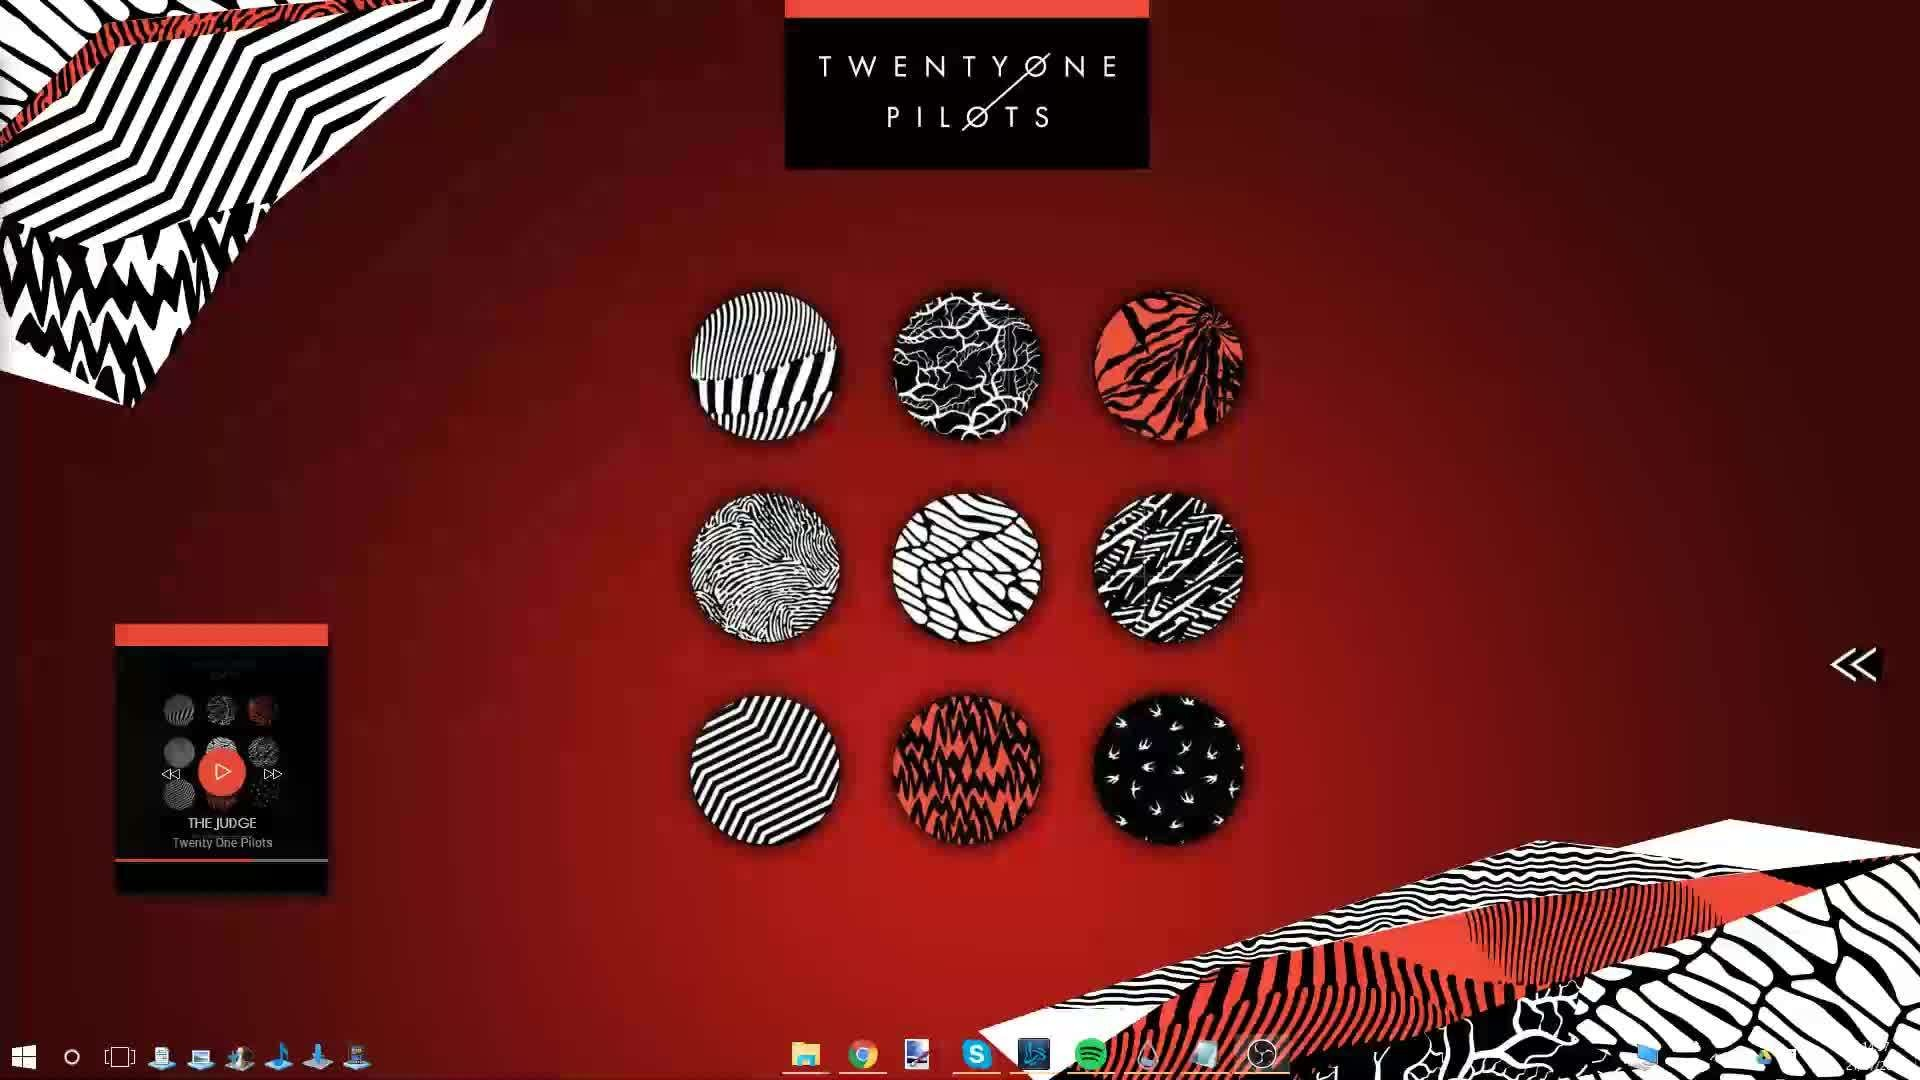 Fall Out Boy Wallpaper Android Twenty One Pilots Desktop Wallpaper 183 ① Download Free